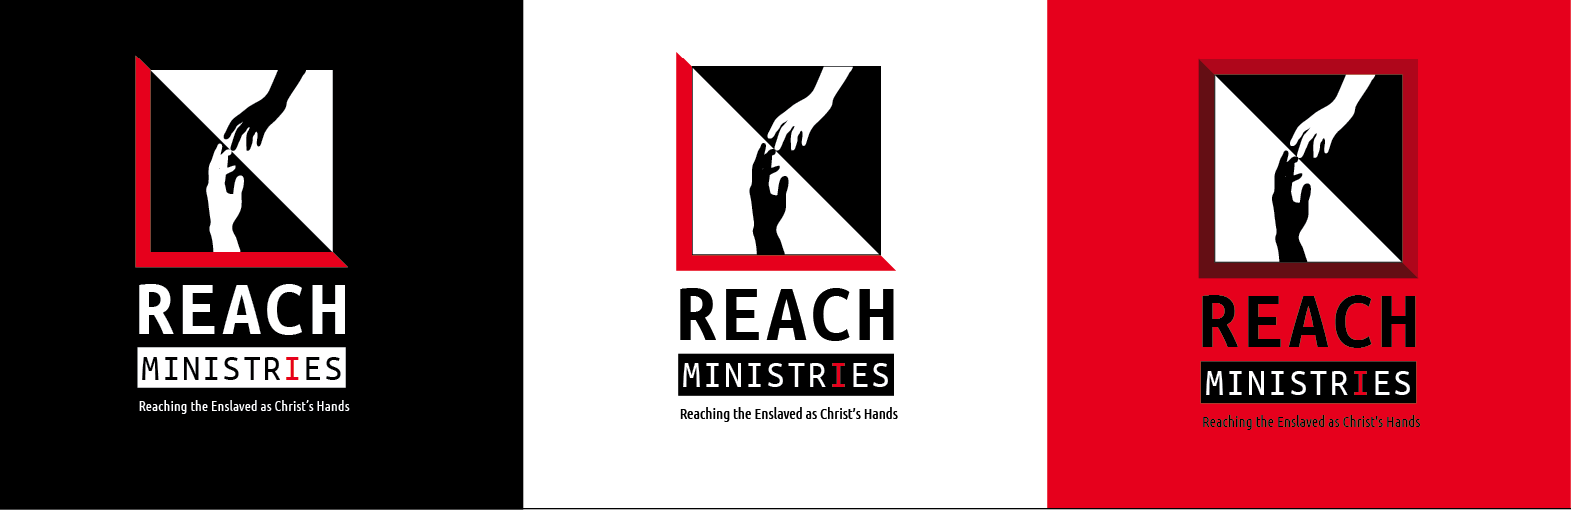 reach-logo-trial-2